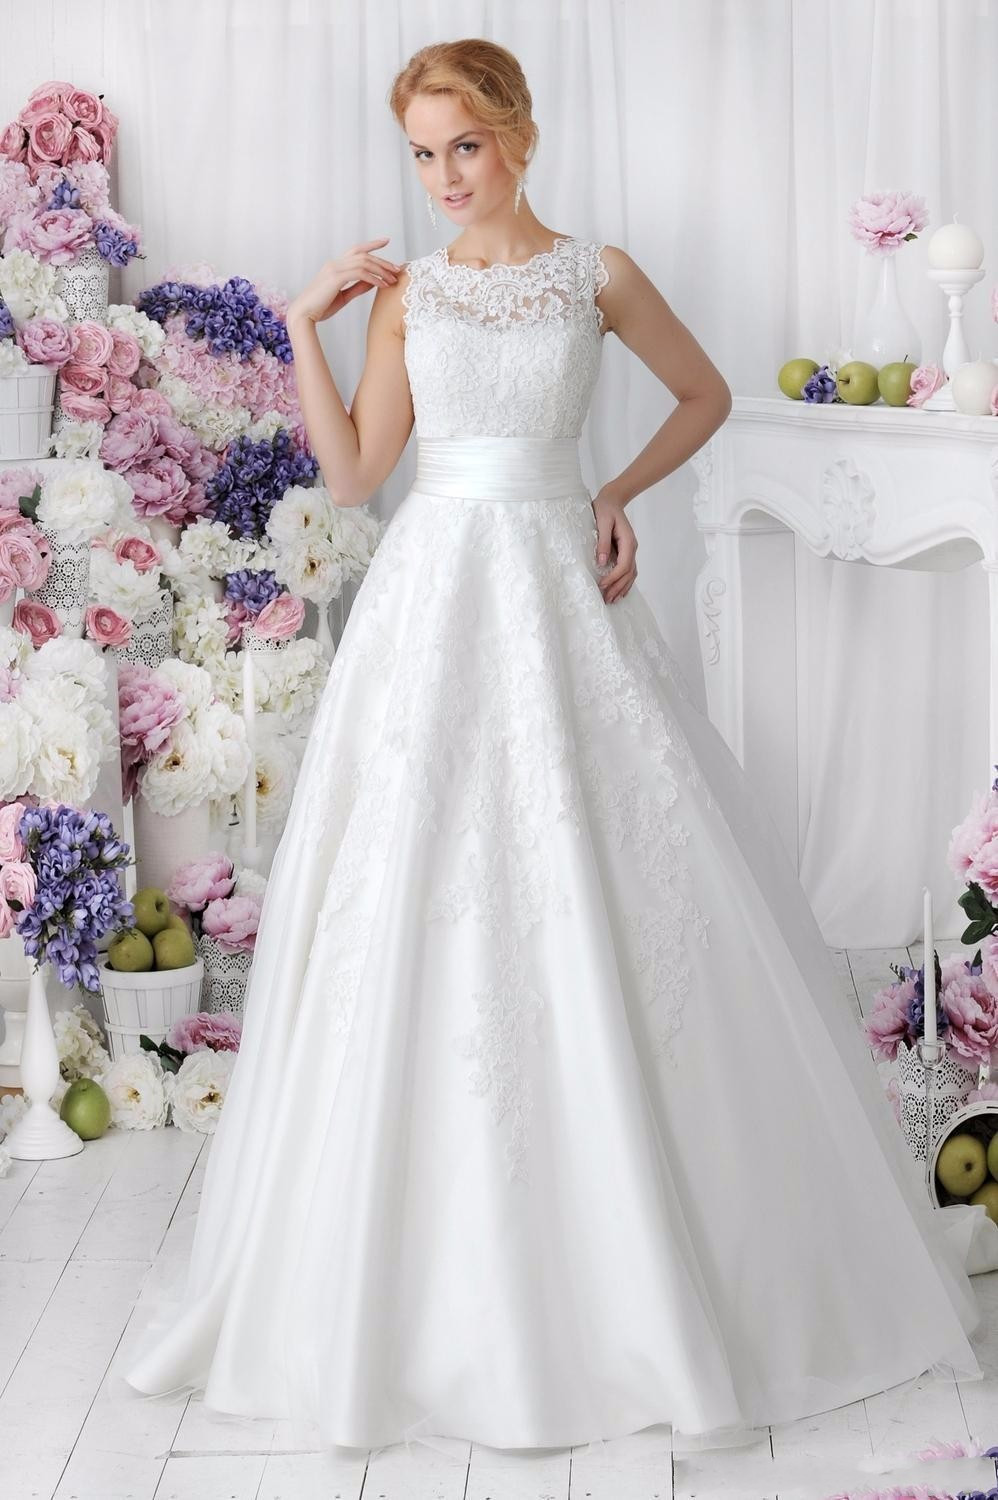 Lace Wedding Dress With Detachable Skirt at Bling Brides Bouquet online bridal s image 3